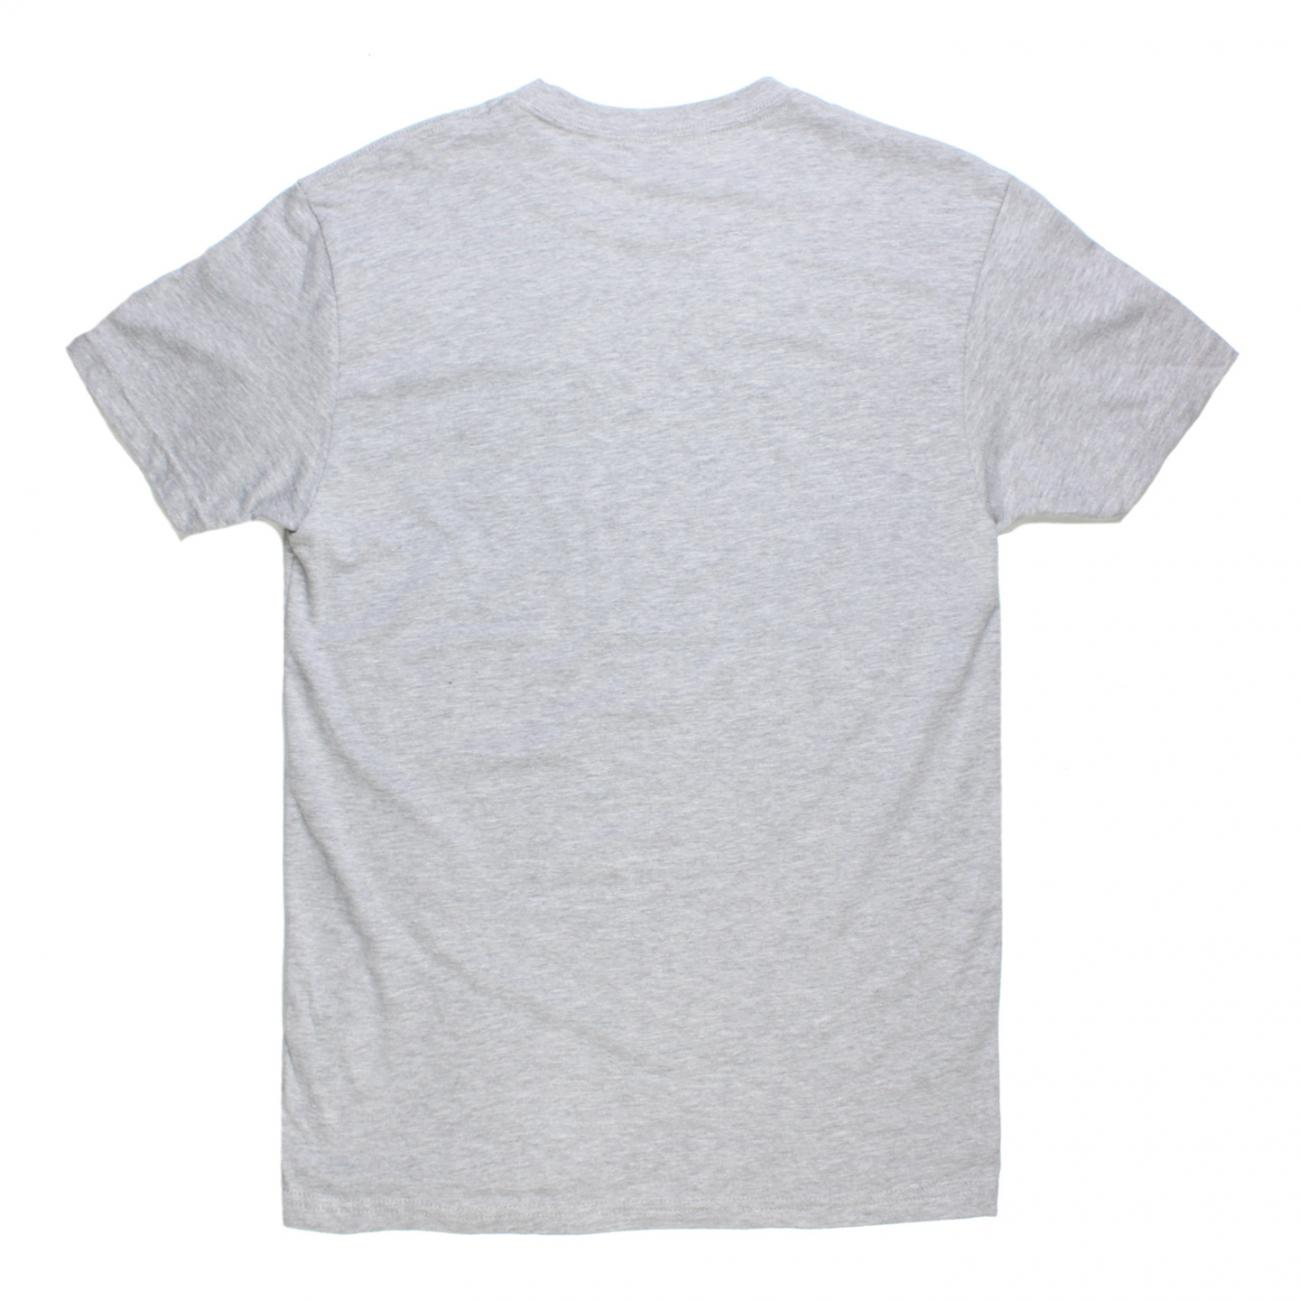 Gurney's T-shirt Screened across chest back grey